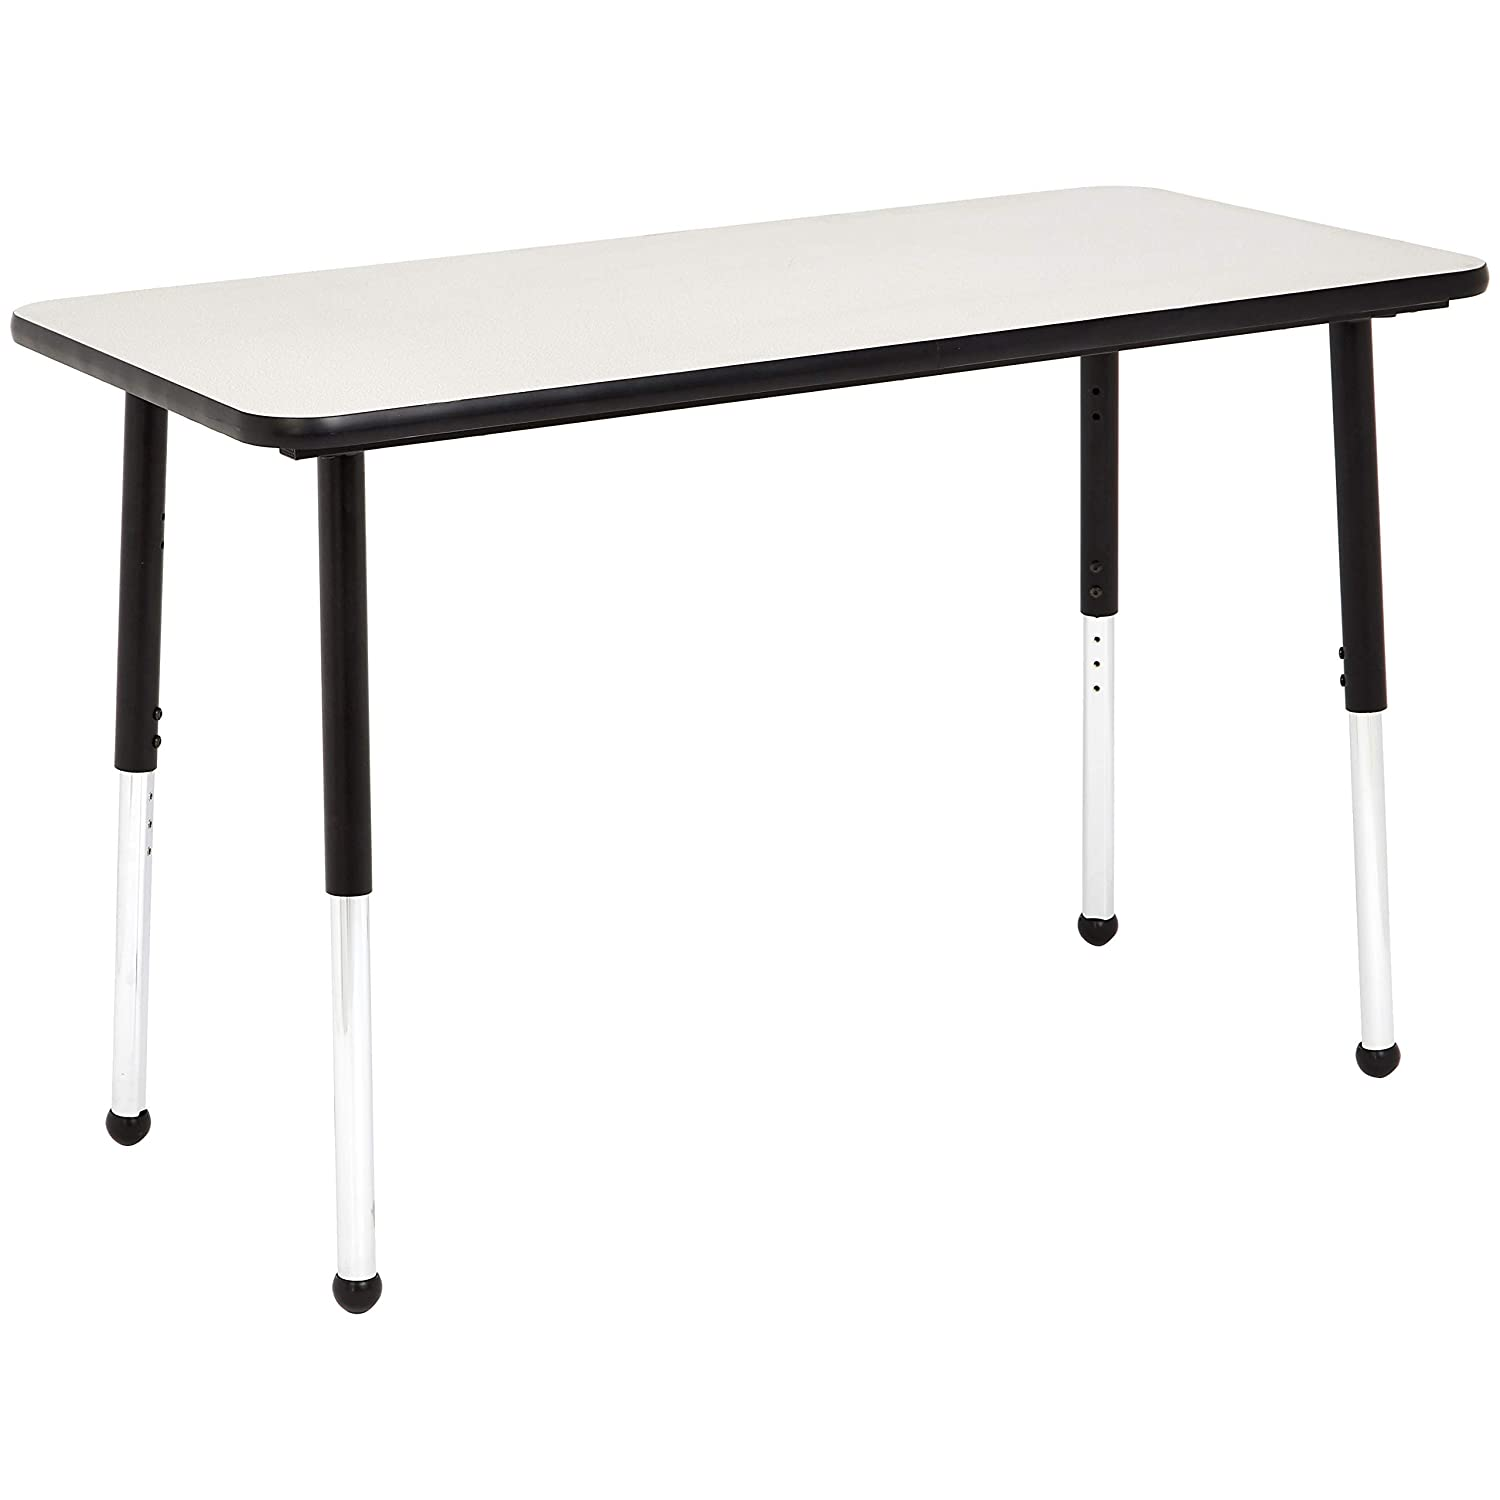 AmazonBasics 24 x 48 Inch Rectangular School Activity Kids Table, Ball Glide Legs, Adjustable Height 19-30 Inch, Grey and Black